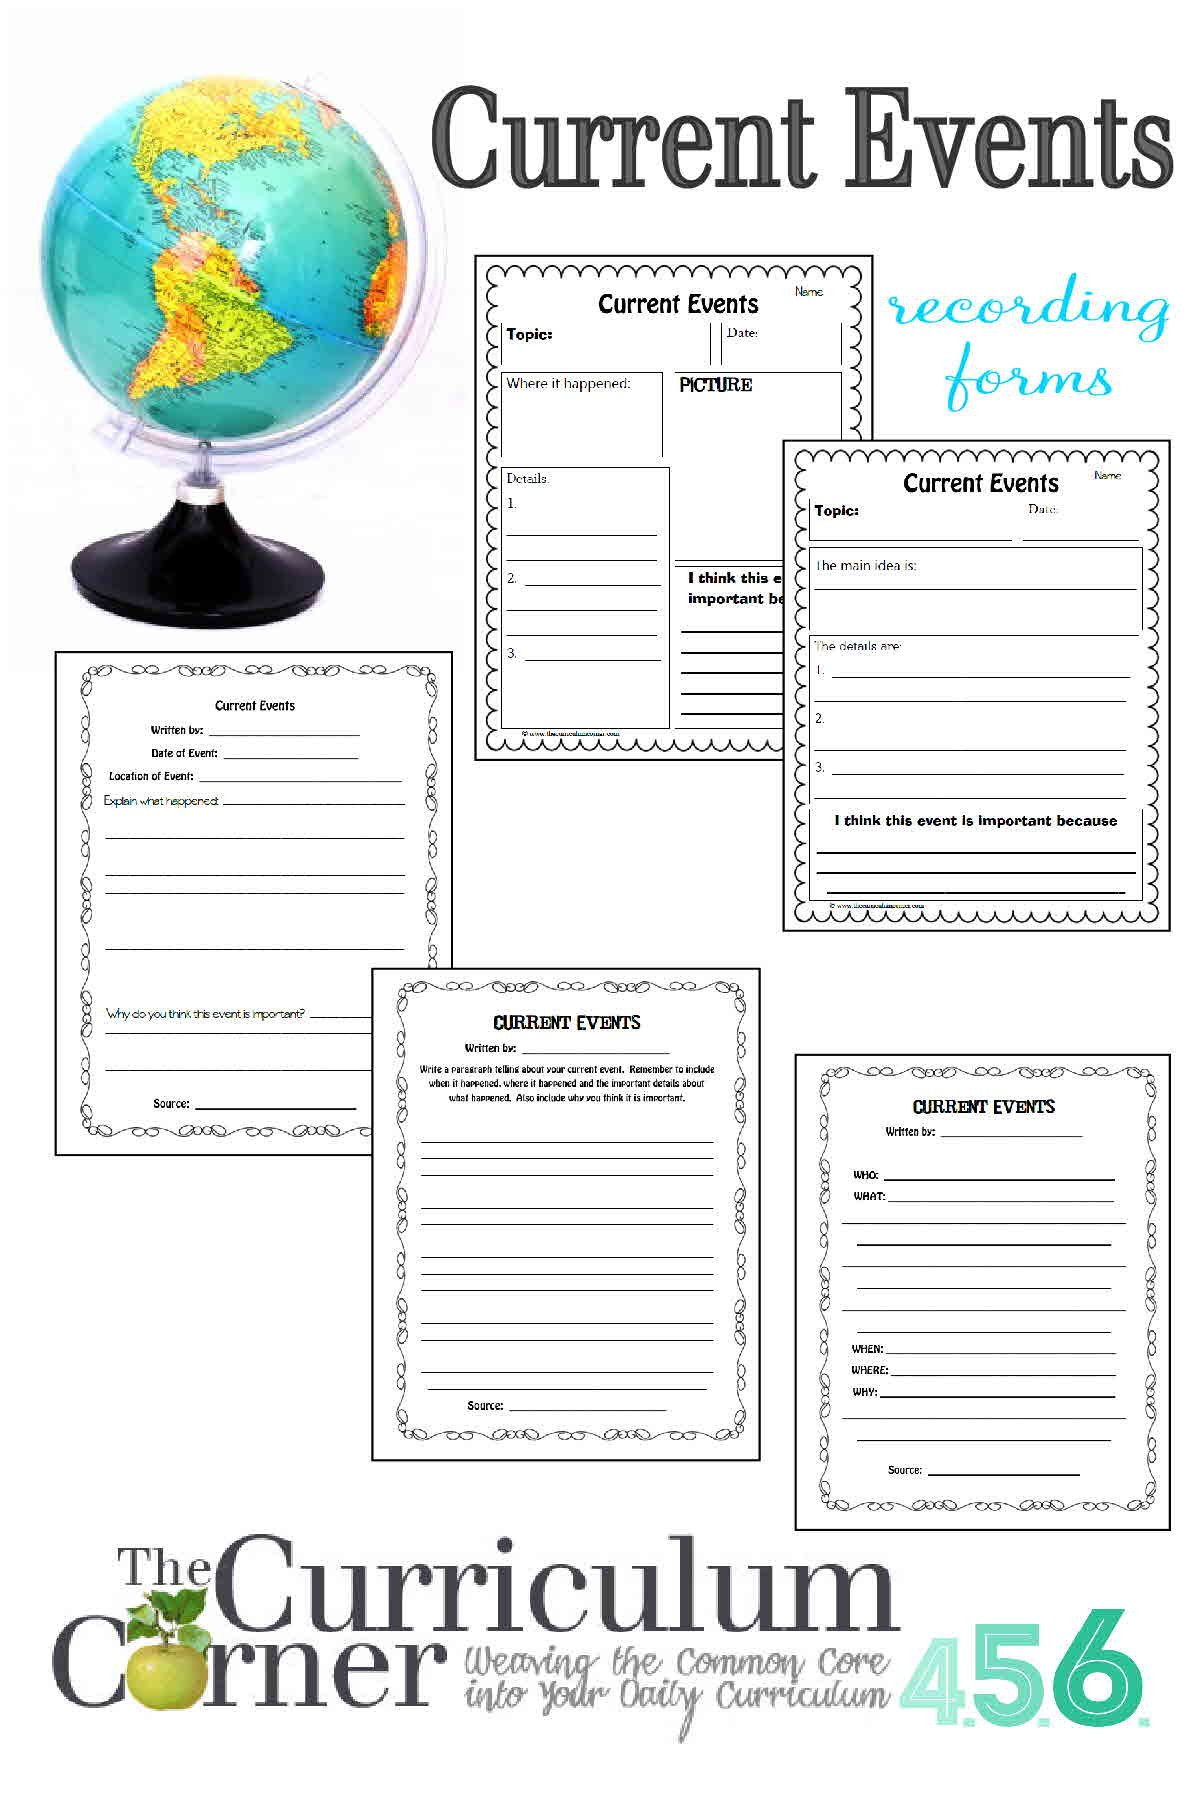 Current Events Template Worksheet